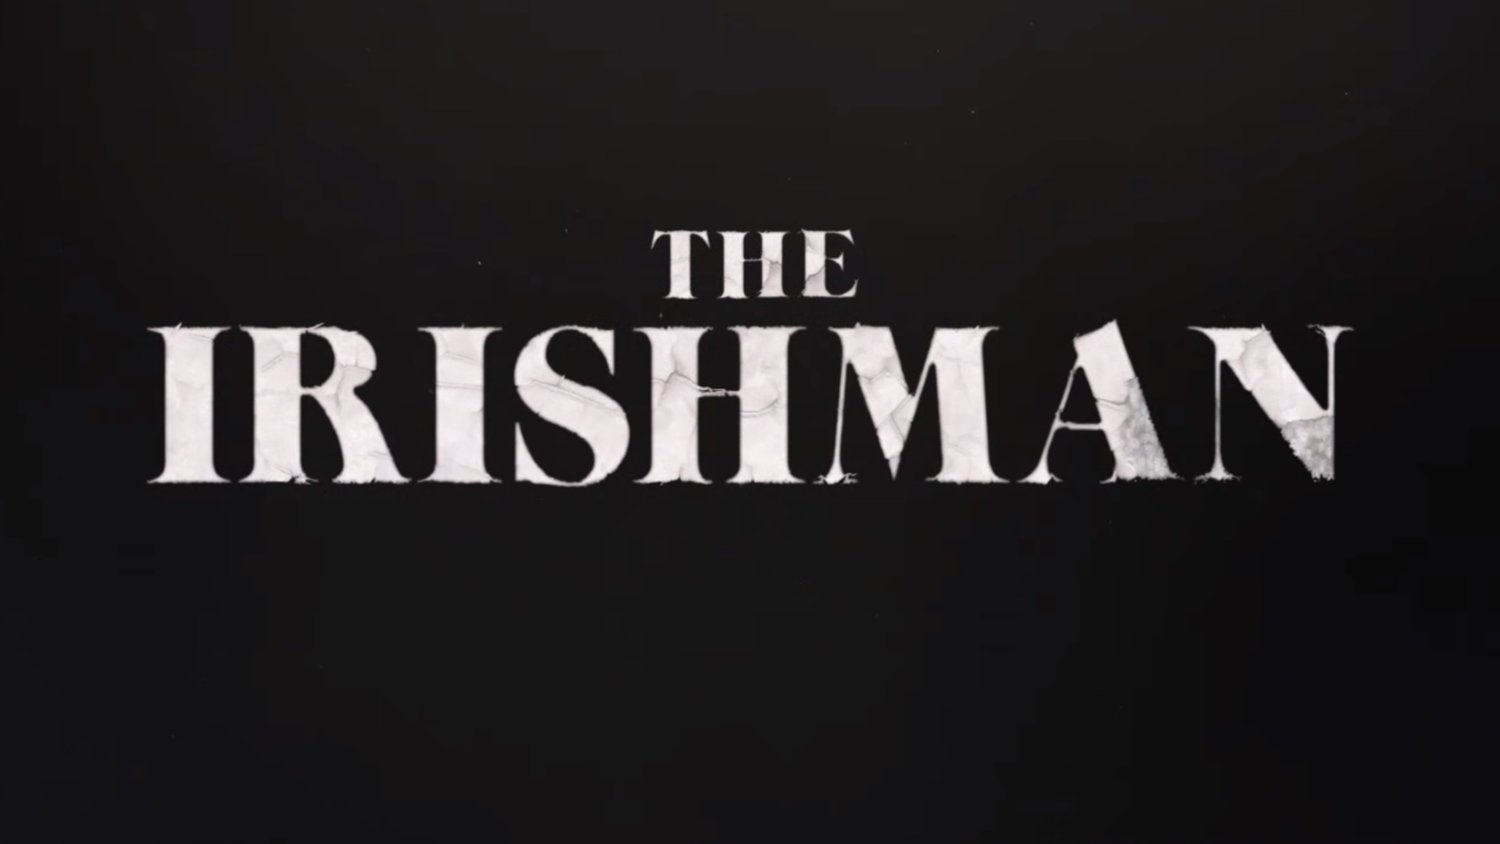 Did you see the end of The Irishman? Congrats—you're one of about 18% who also fell asleep and woke up at the credits Ypehmish, Teaser-trailer-for-martin-scorseses-the-irishman-social, CC BY-SA 4.0